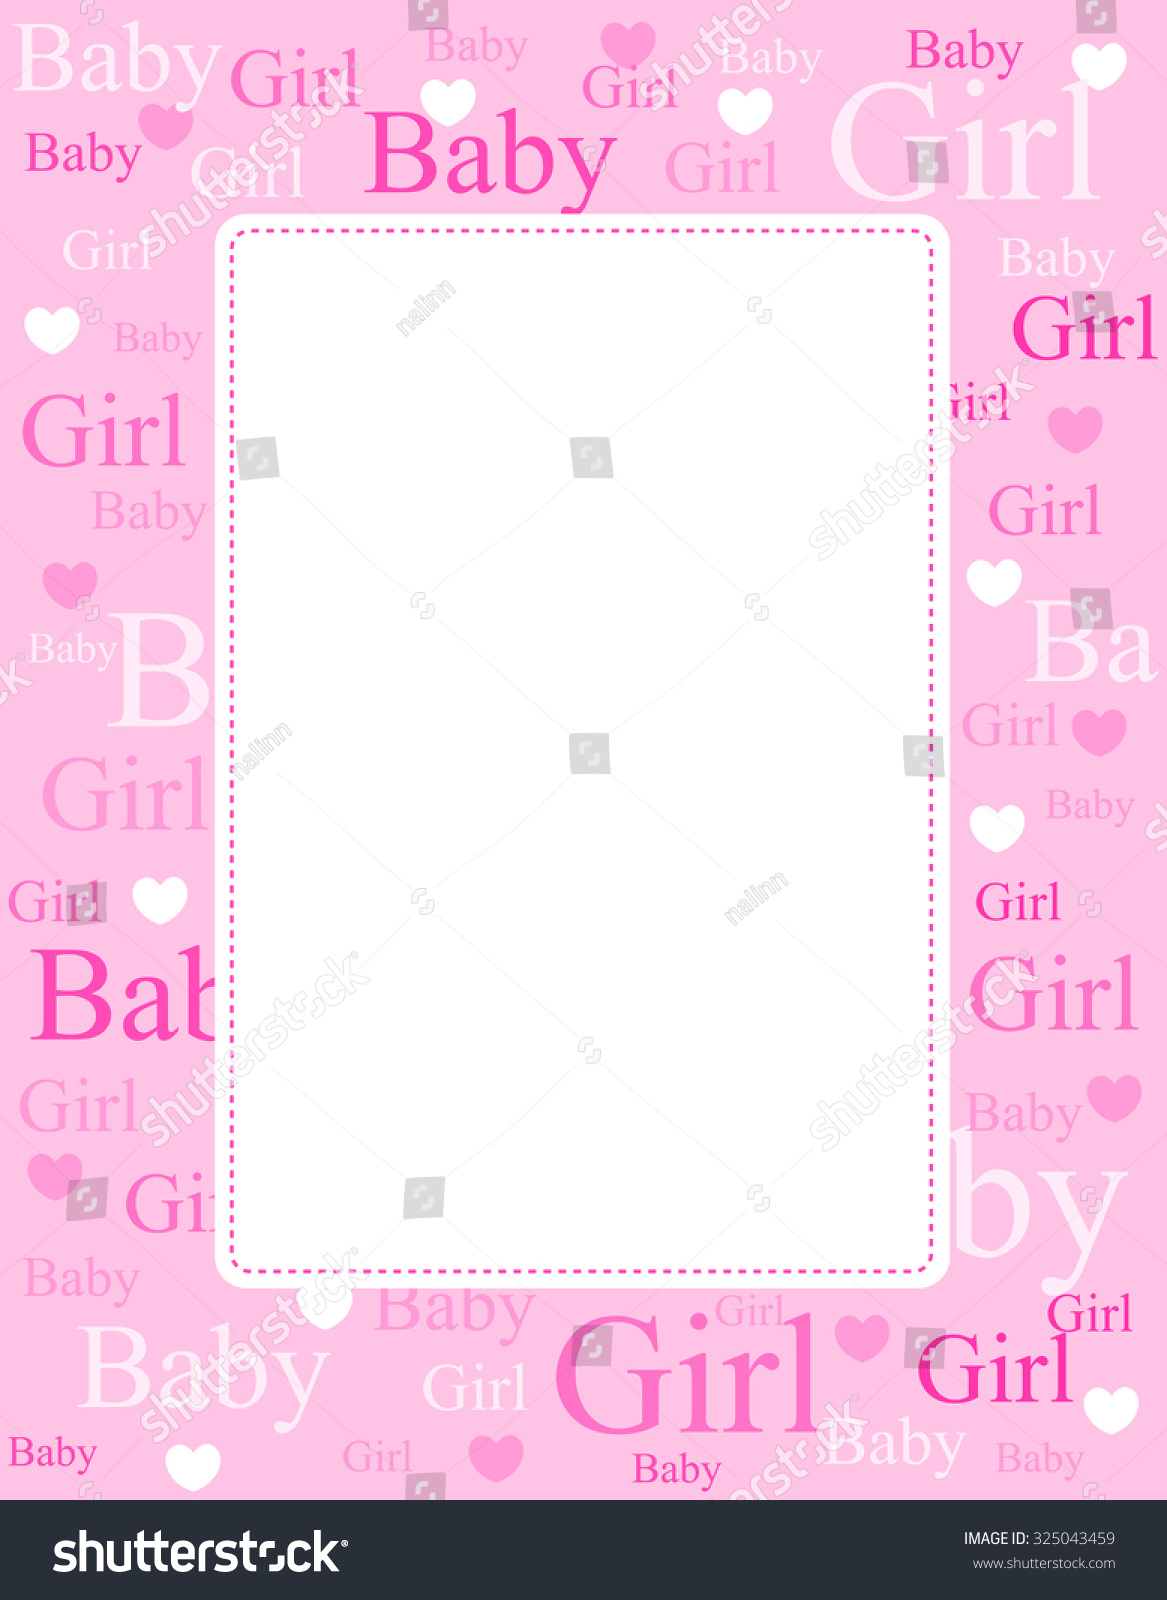 Royalty Free Stock Illustration of Cute Pink Frame Border Baby Girl ...